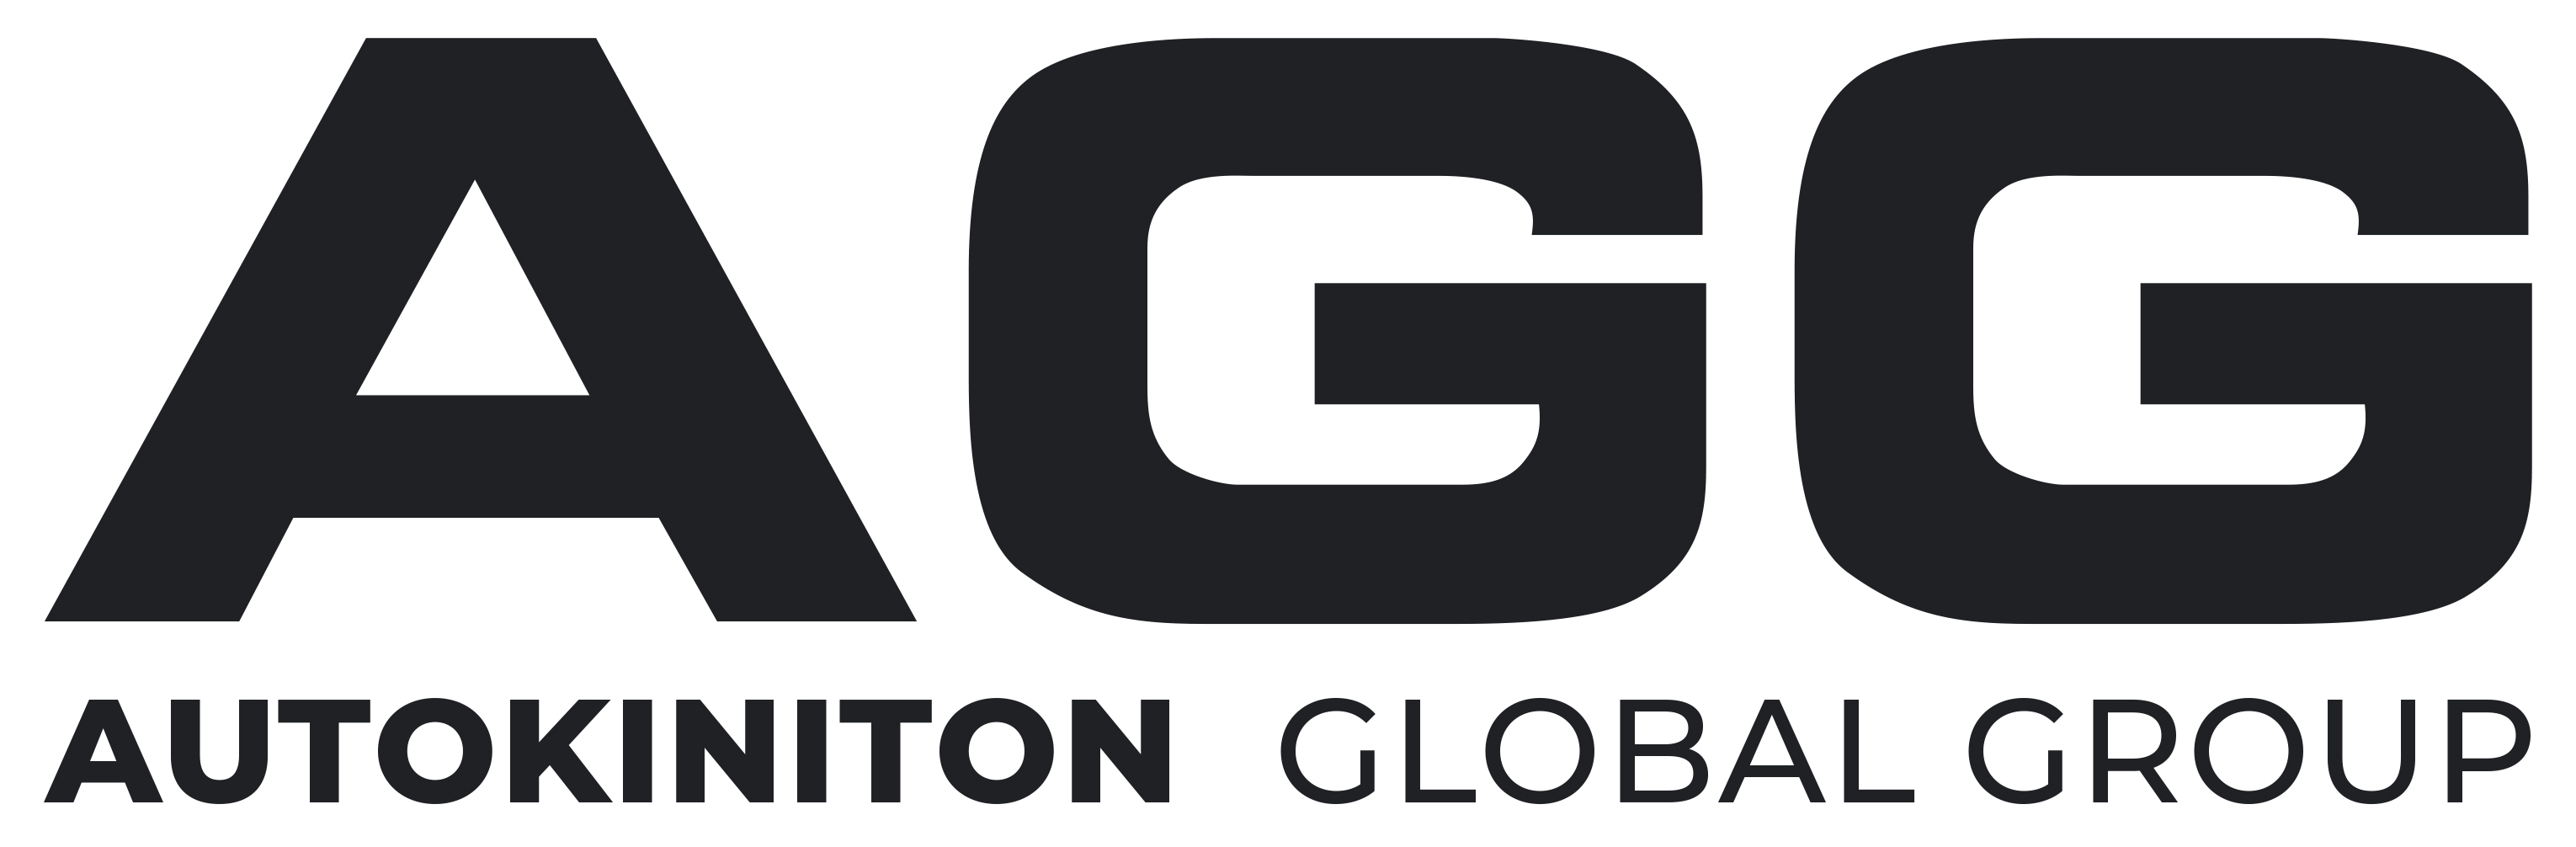 AGG Logo - High Res copy